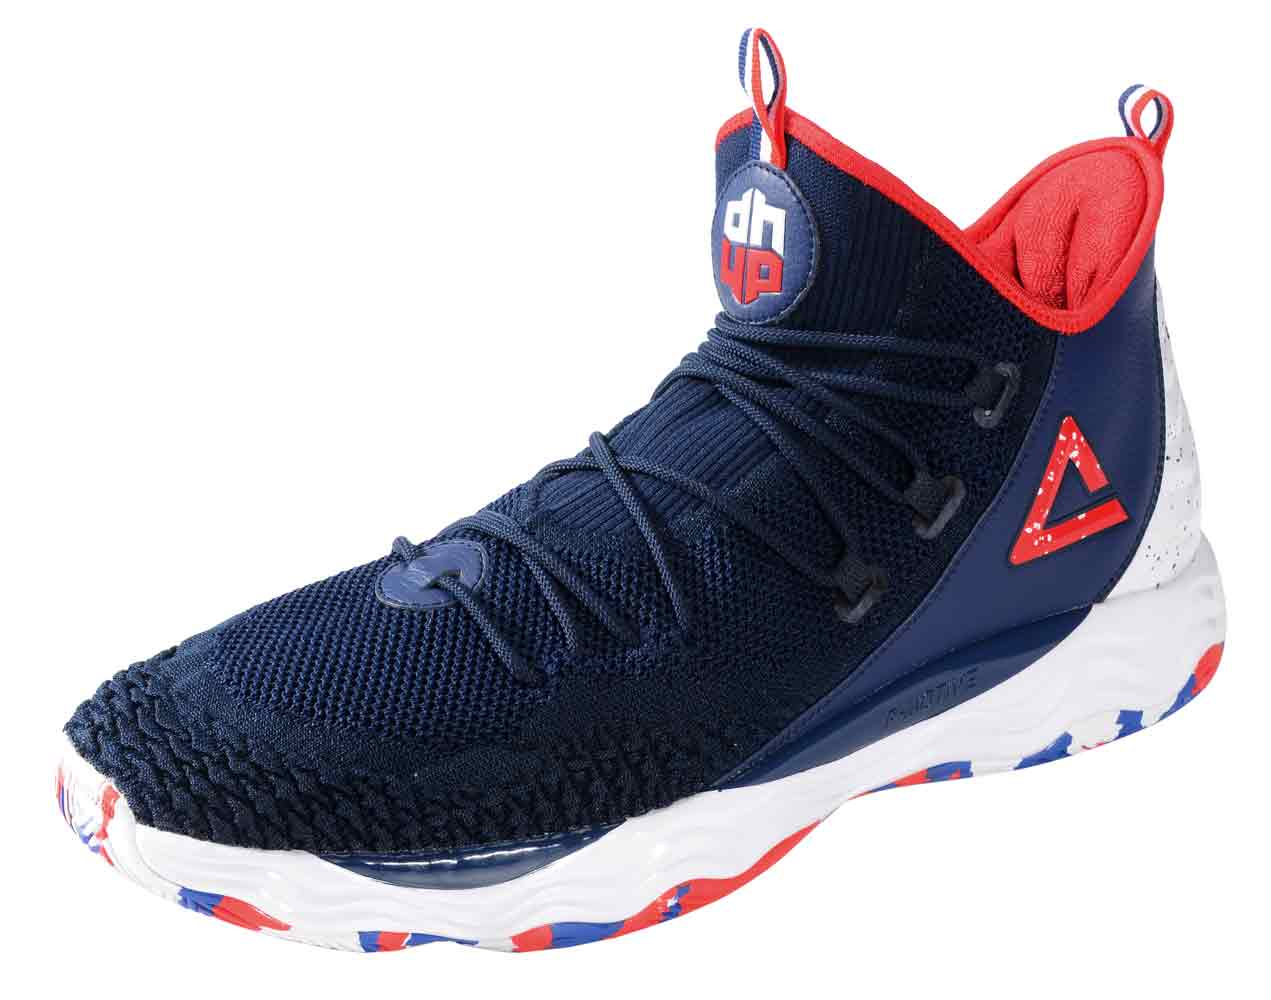 PEAK Basketballschuh Dwight Howard DH4